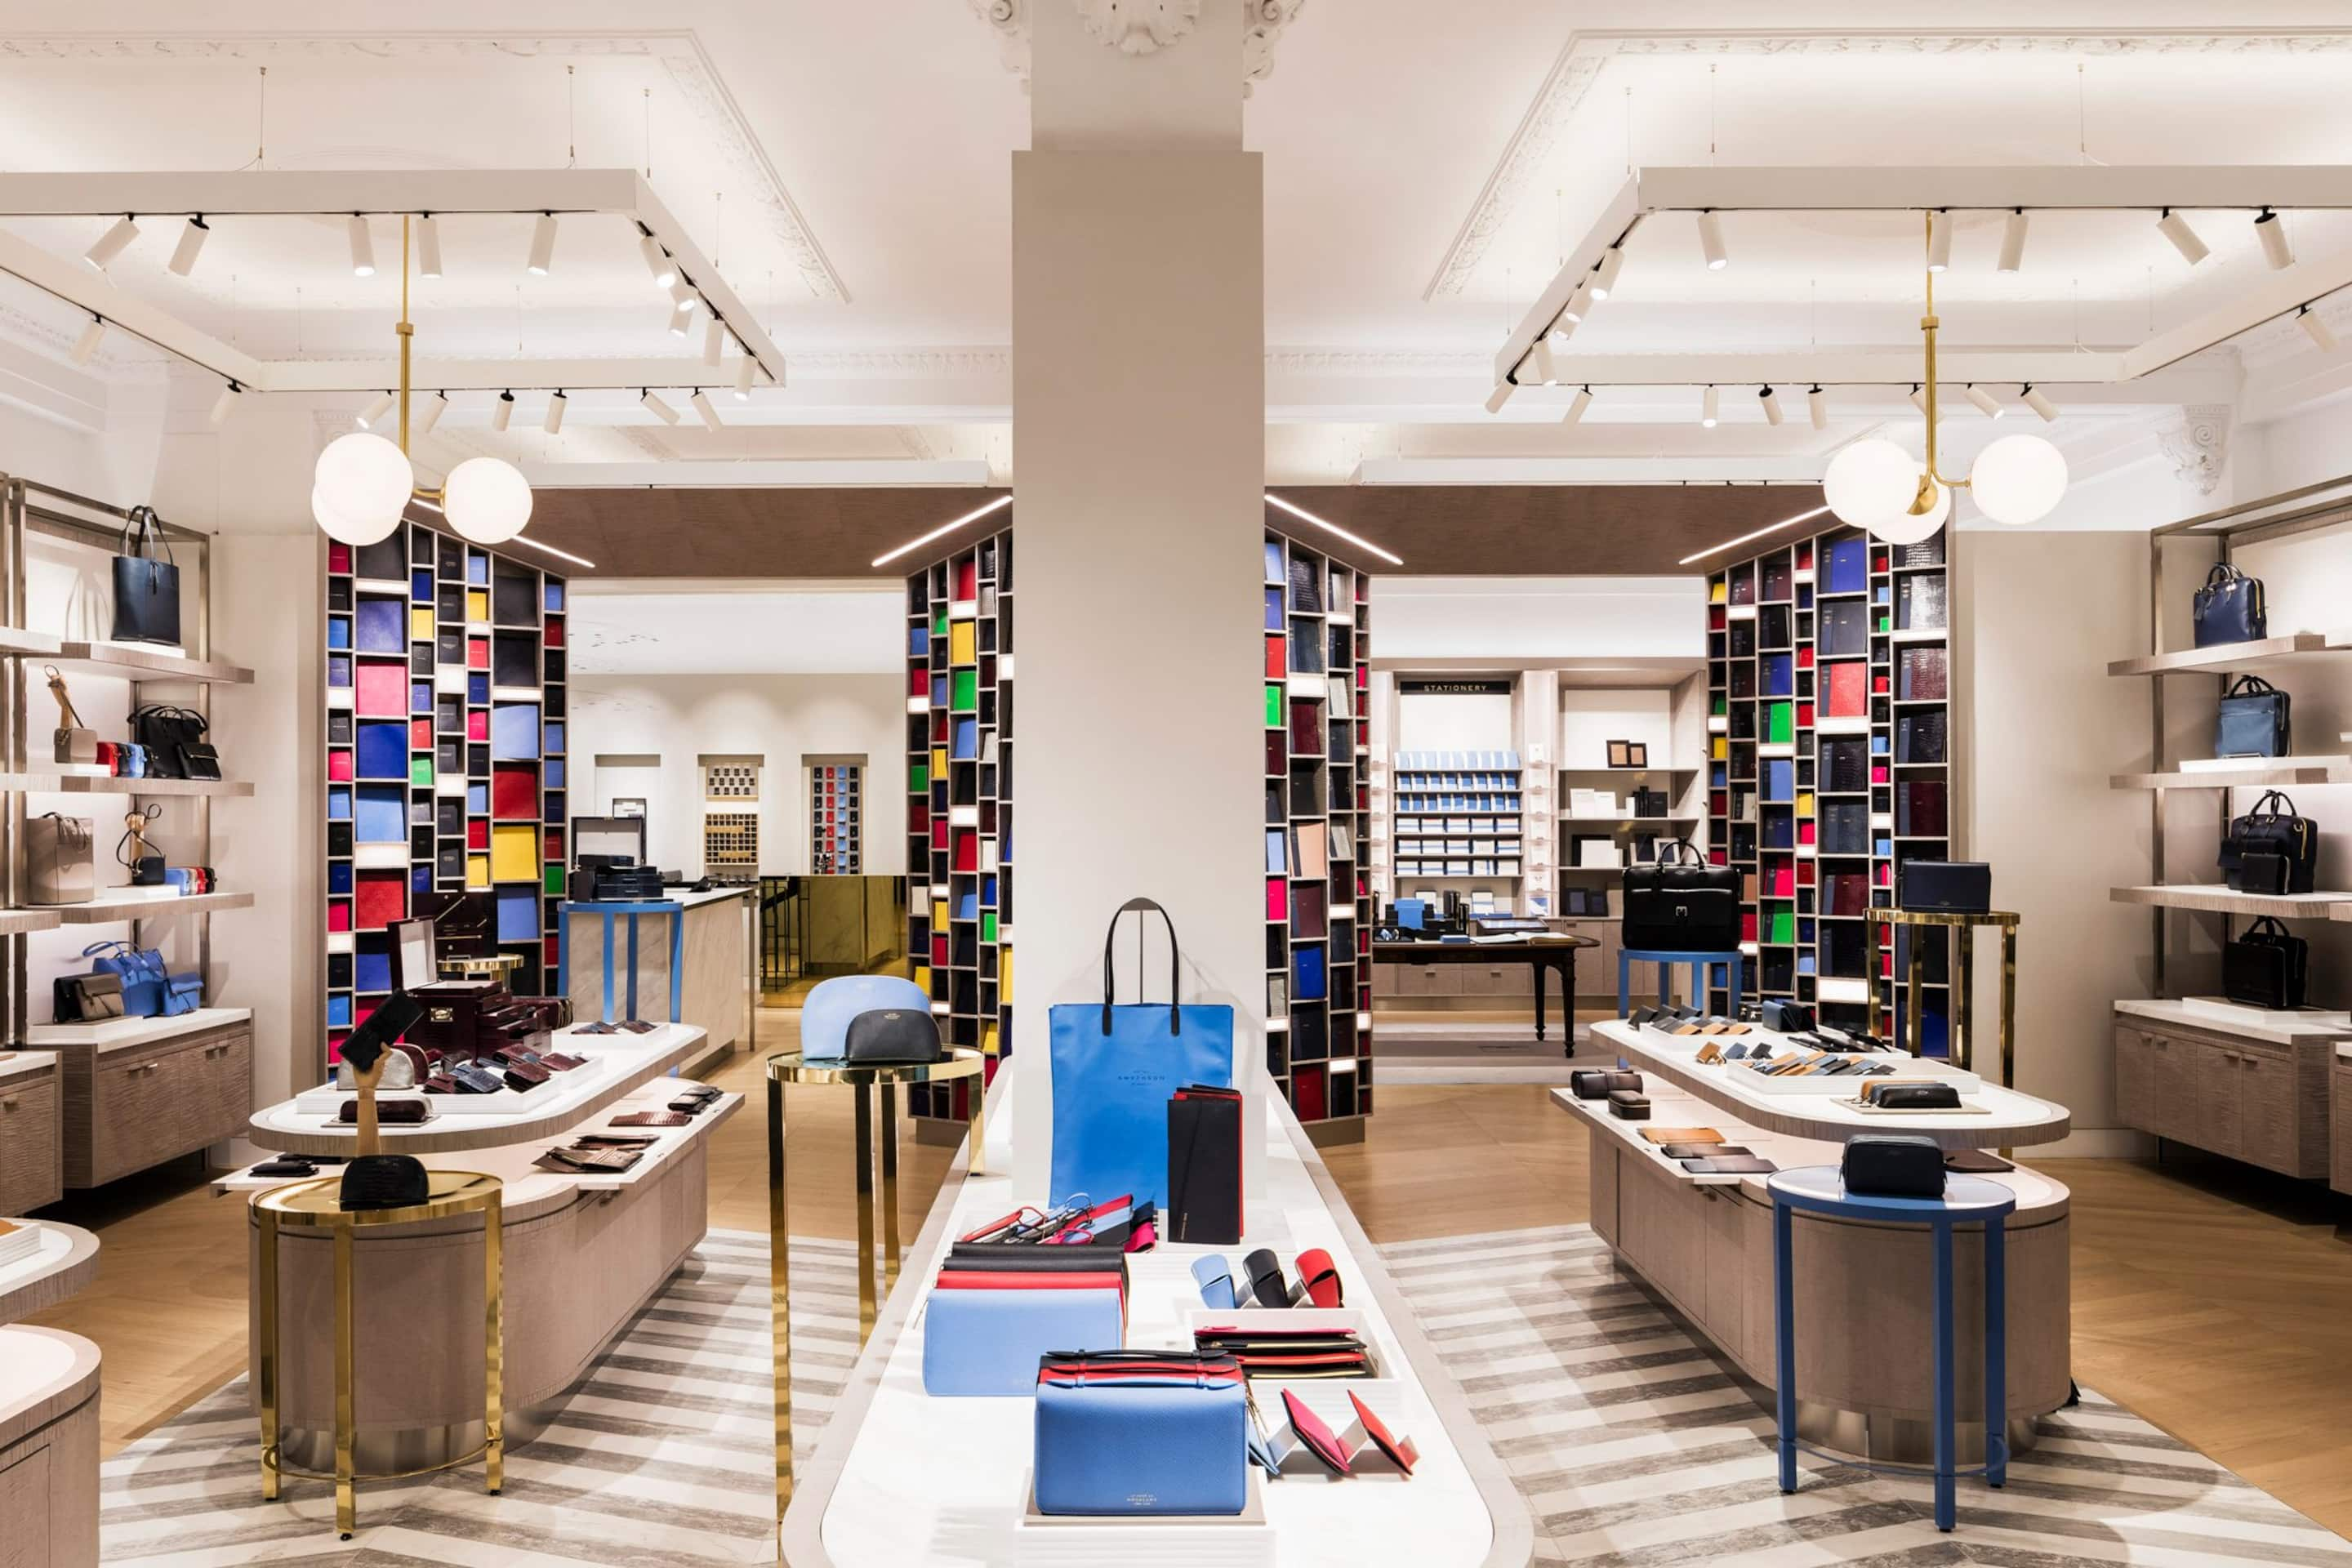 Bags and leather accessories on display at Smythson on New Bond Street, London